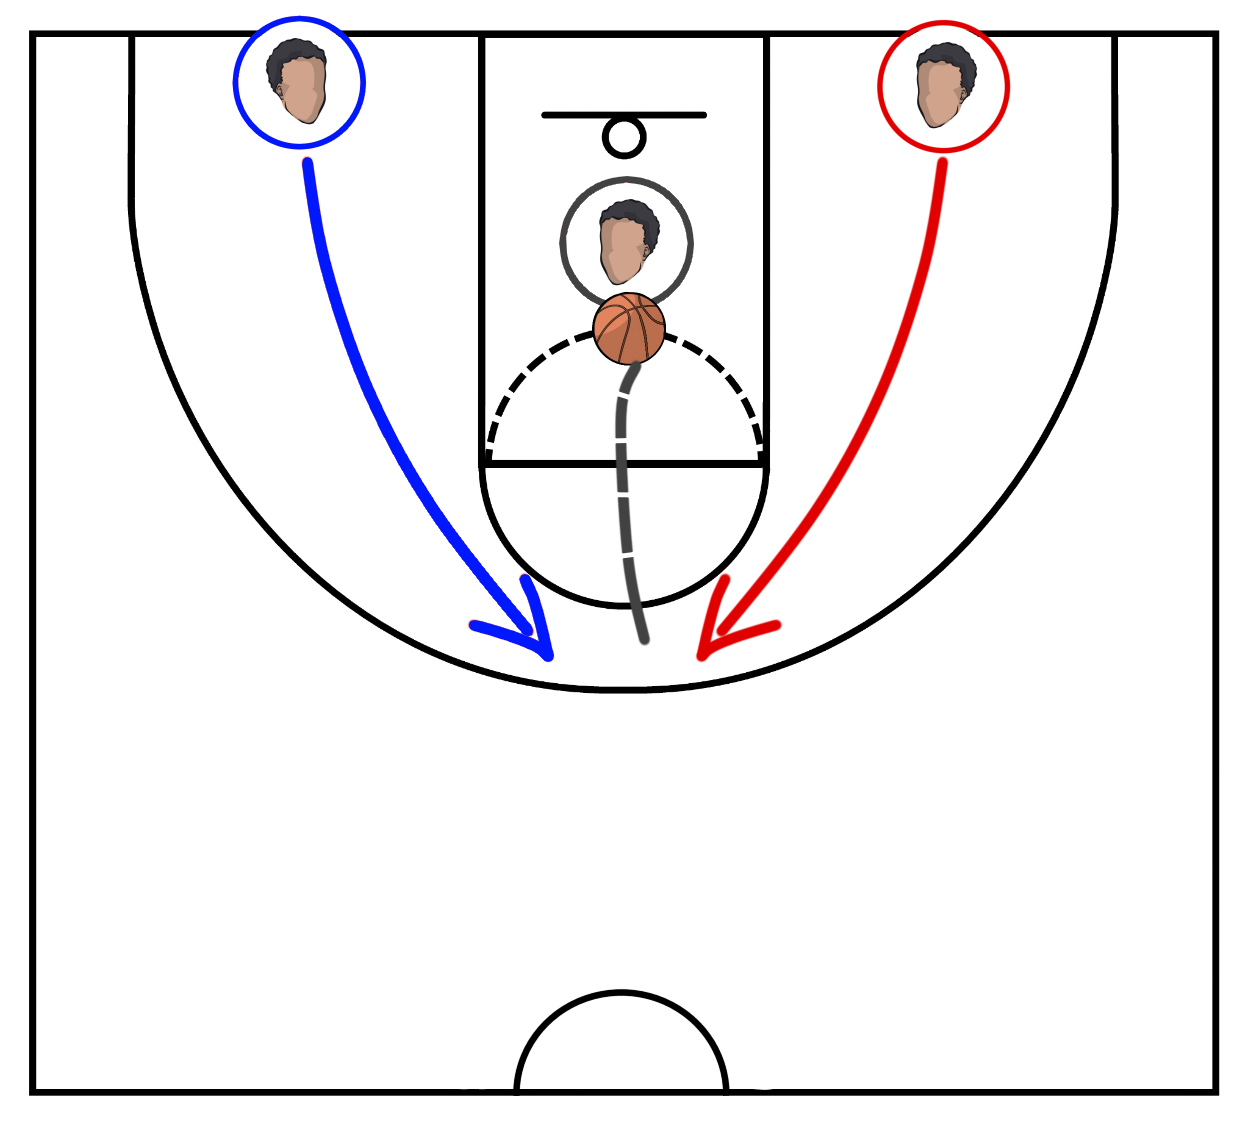 Worm Kids Basketball Drill